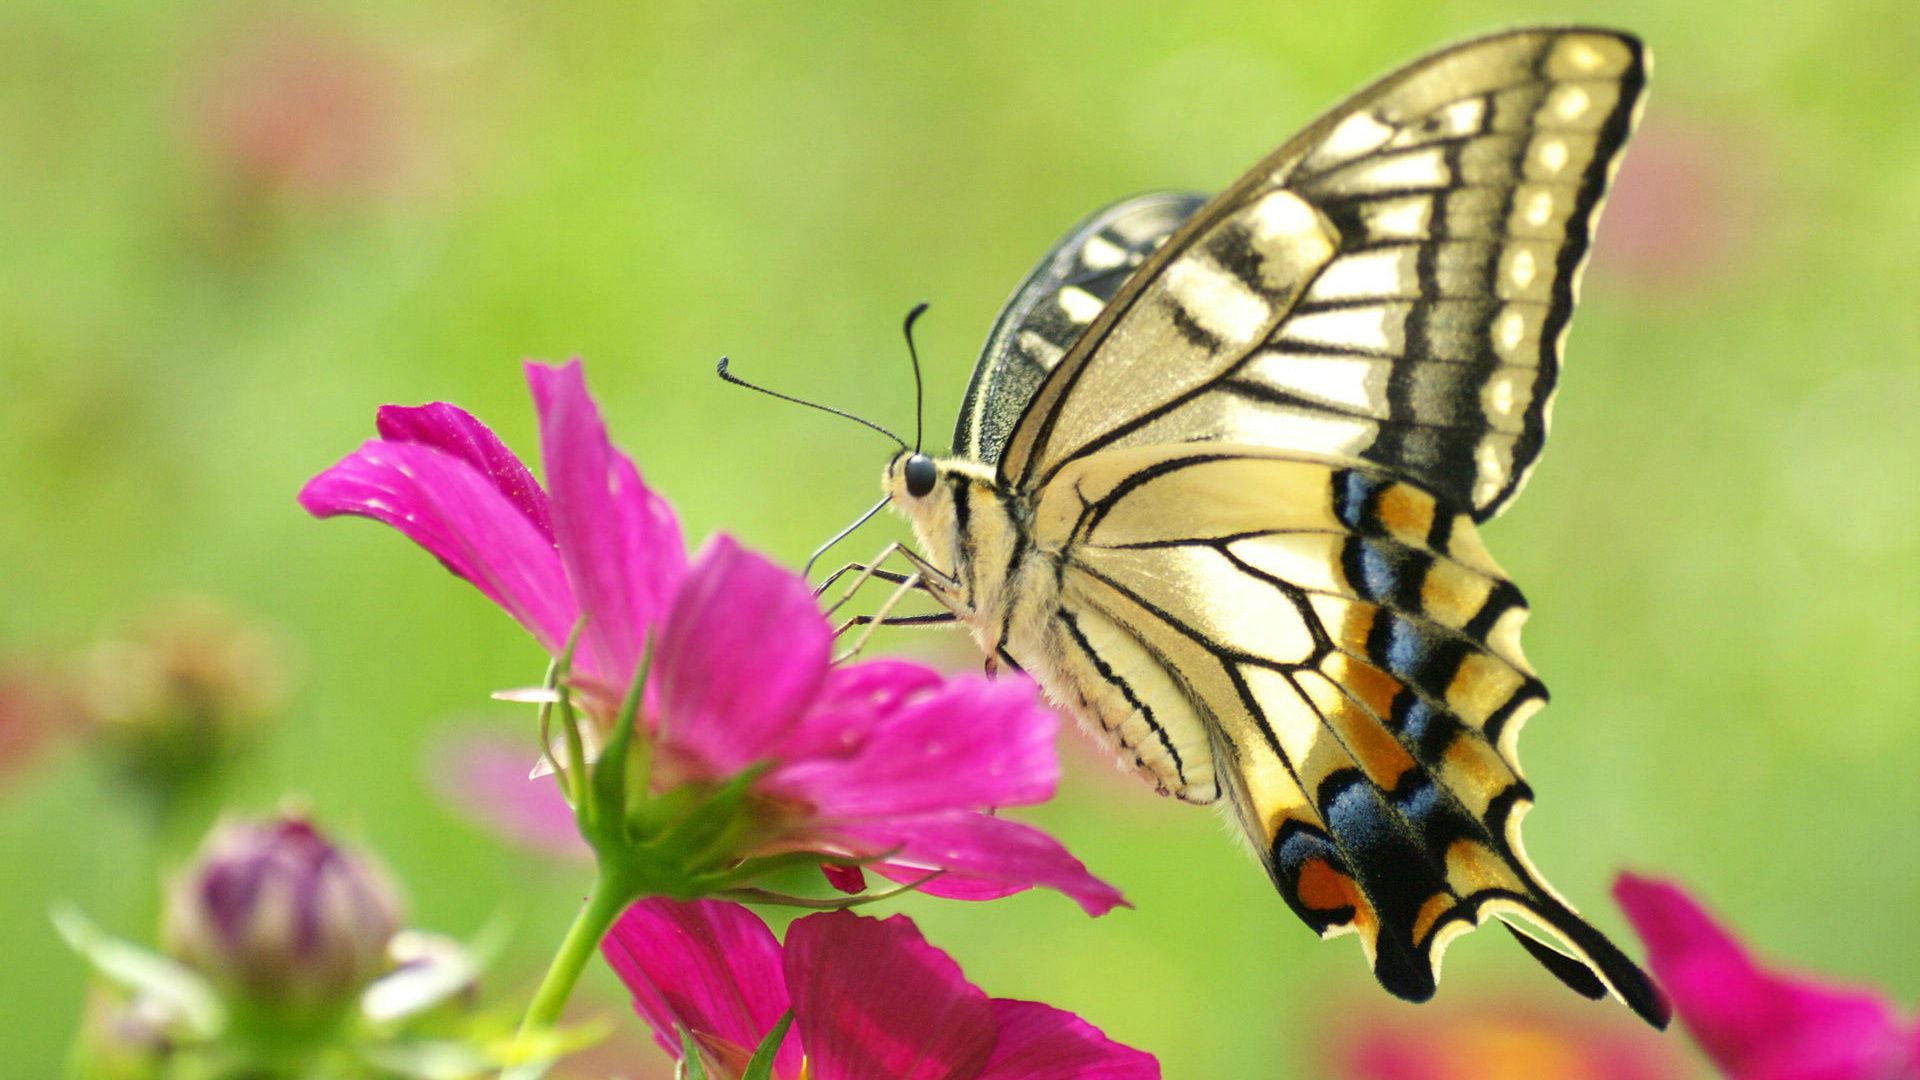 Incroyable Butterfly Rests On Flower Macro Shot Hd Wallpaper List .